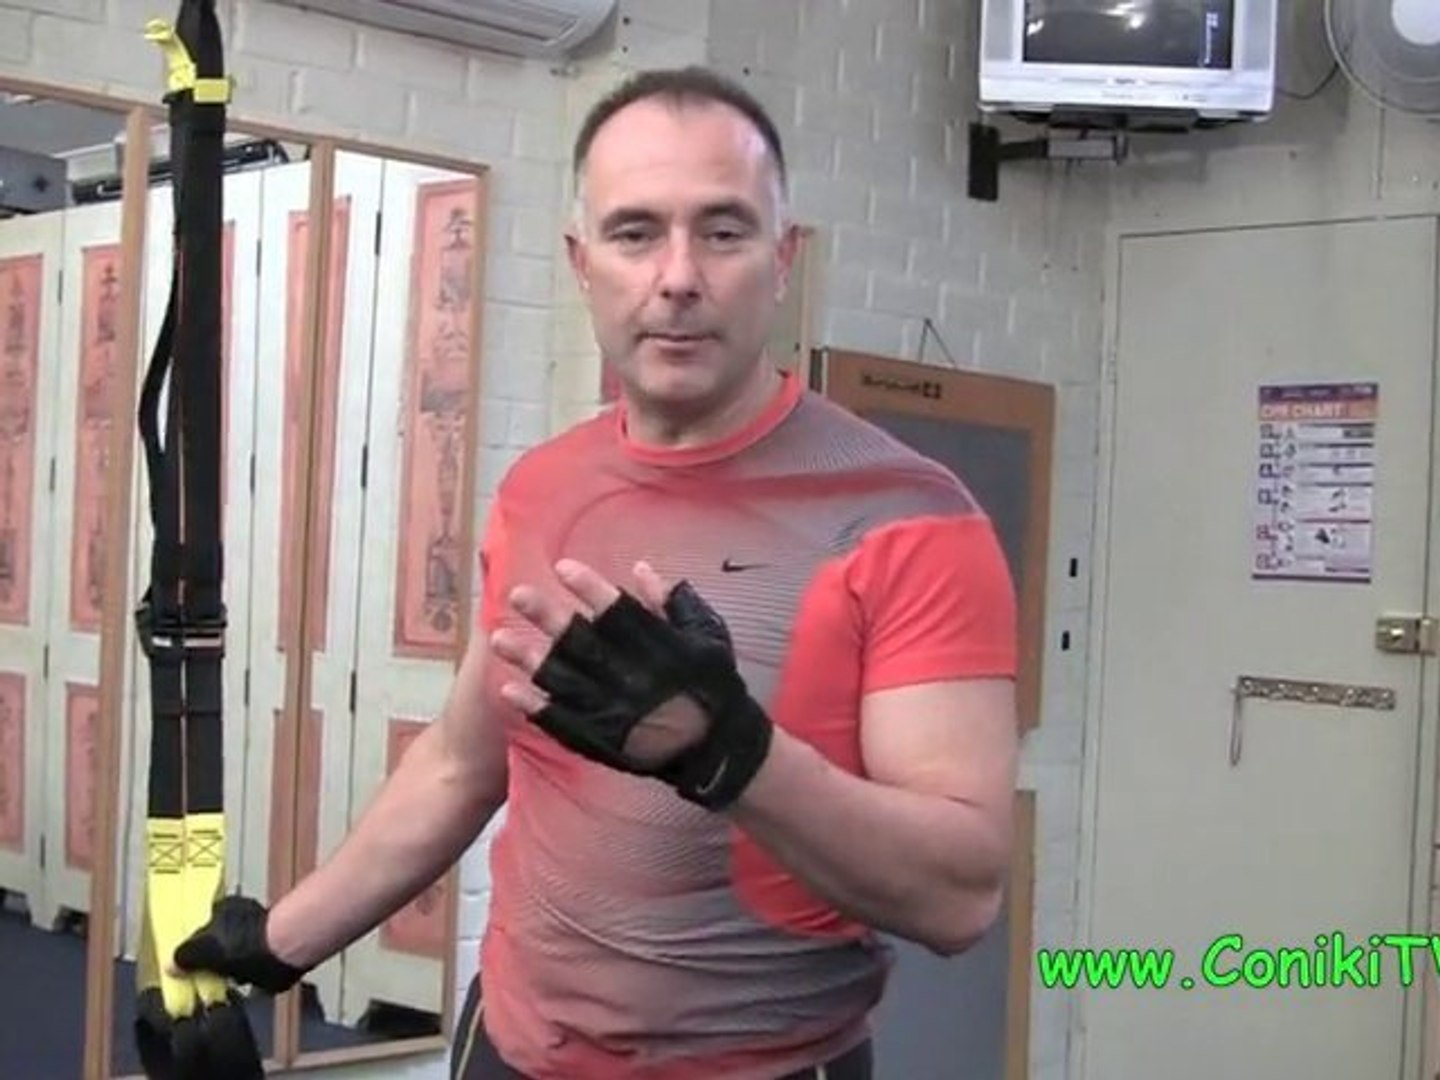 Tutorial - KRYPTONITE TRX CROSS UPS - How To